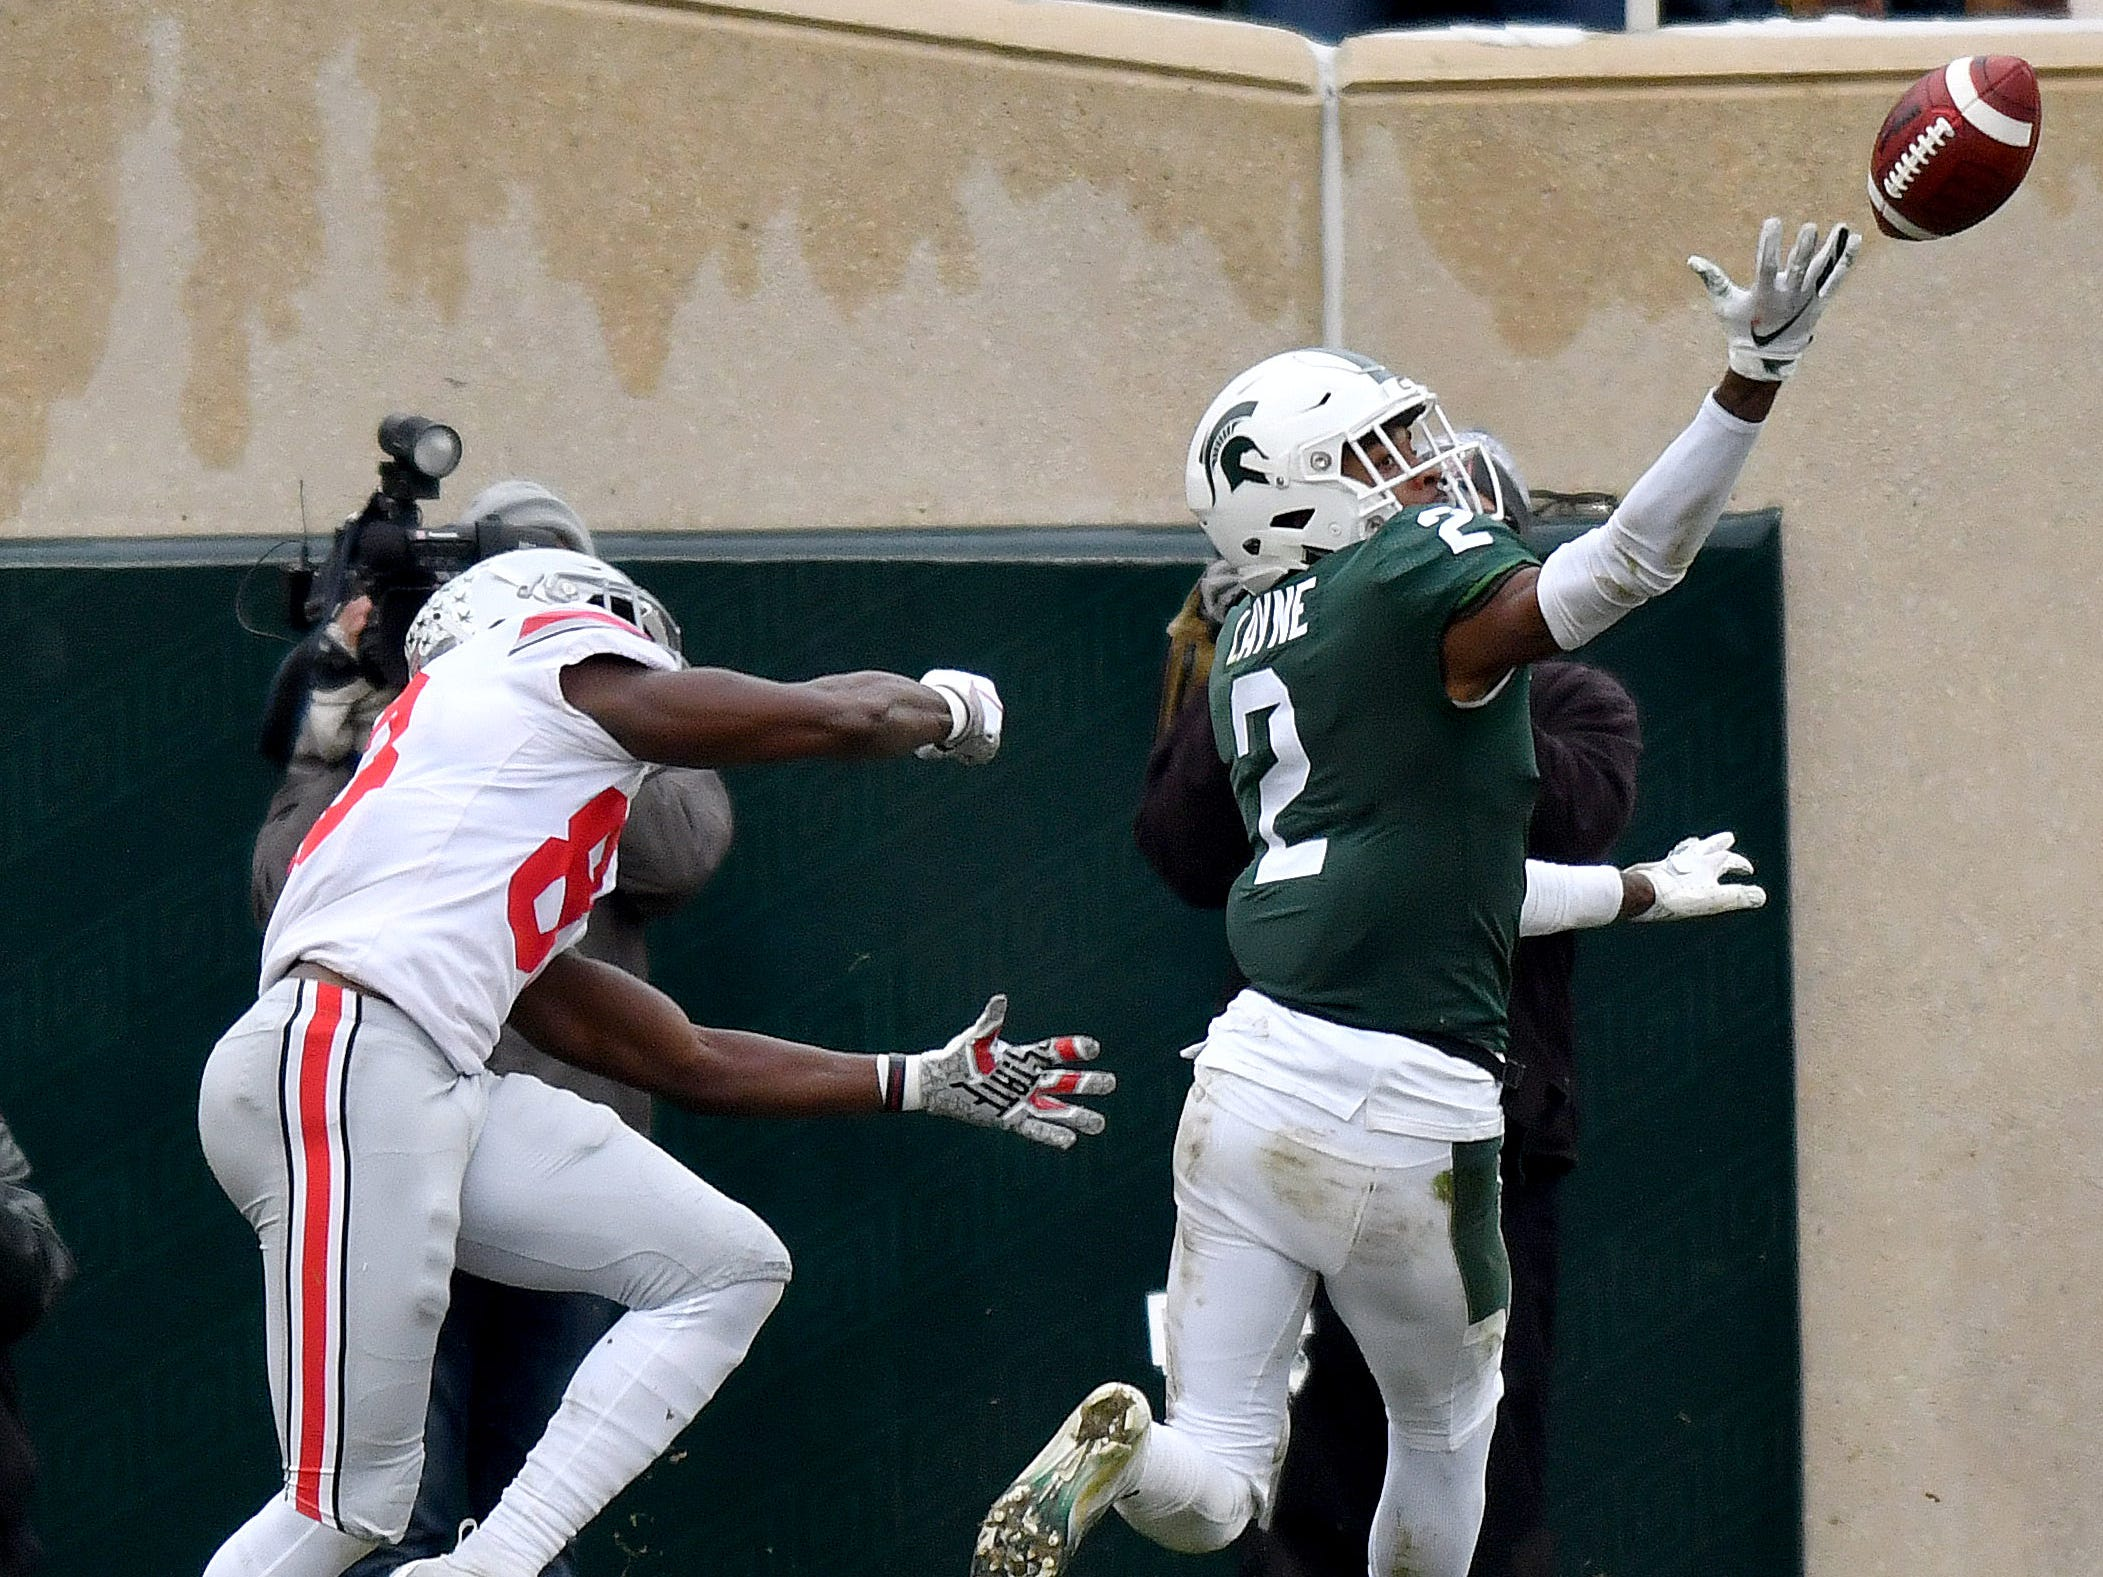 Cornerback Justin Layne bats away a pass intended for Terry McLaurin in the second quarter.